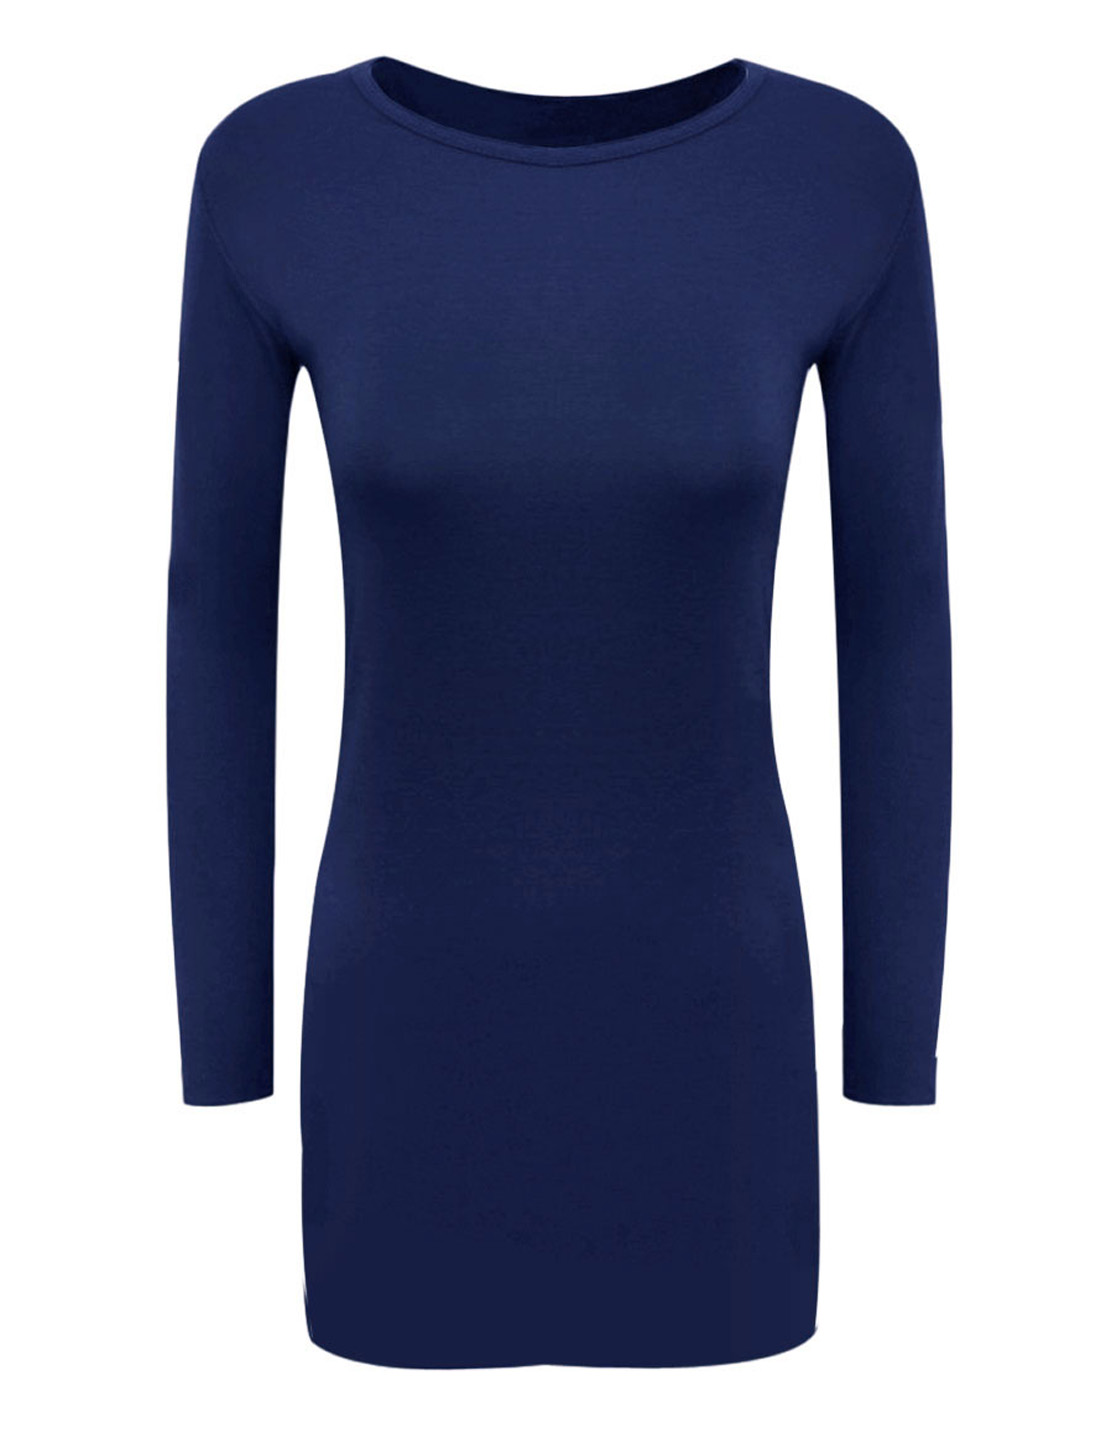 Women Round Neck Long Sleeves Pullover Leisure Sheath Dress Royal Blue M